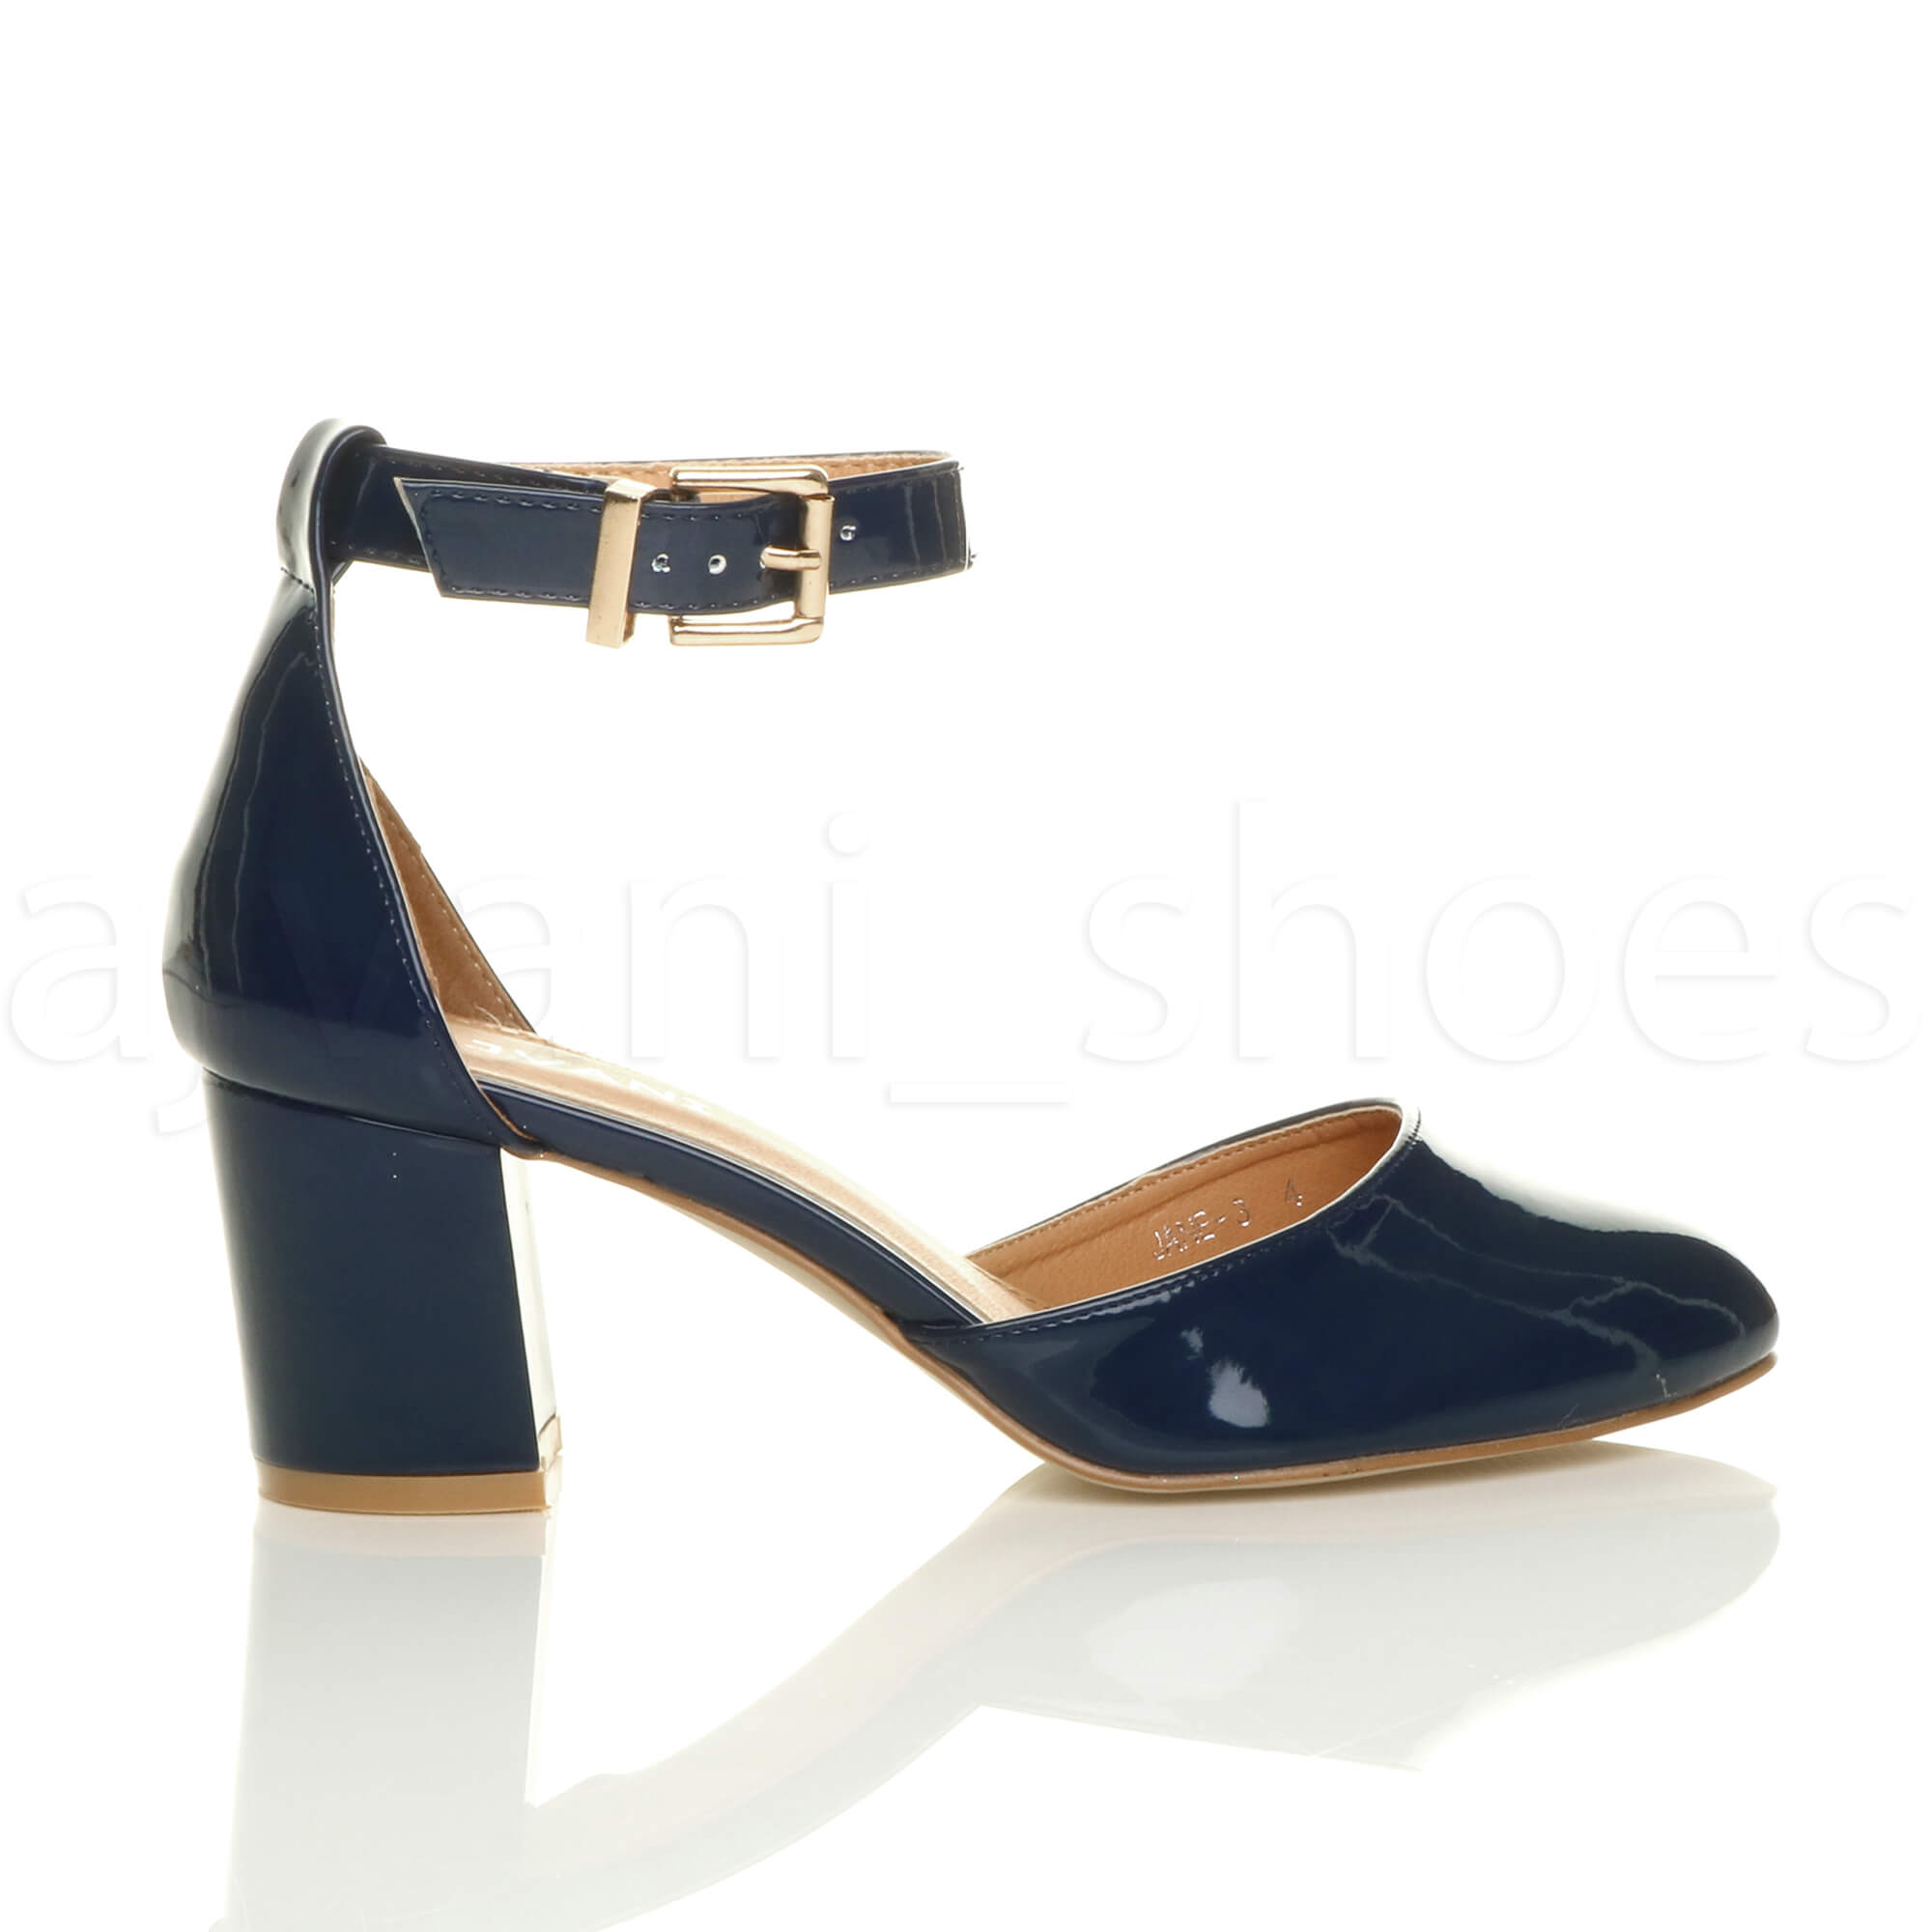 WOMENS-LADIES-LOW-MID-BLOCK-HEEL-ANKLE-STRAP-MARY-JANE-COURT-SHOES-SANDALS-SIZE thumbnail 99